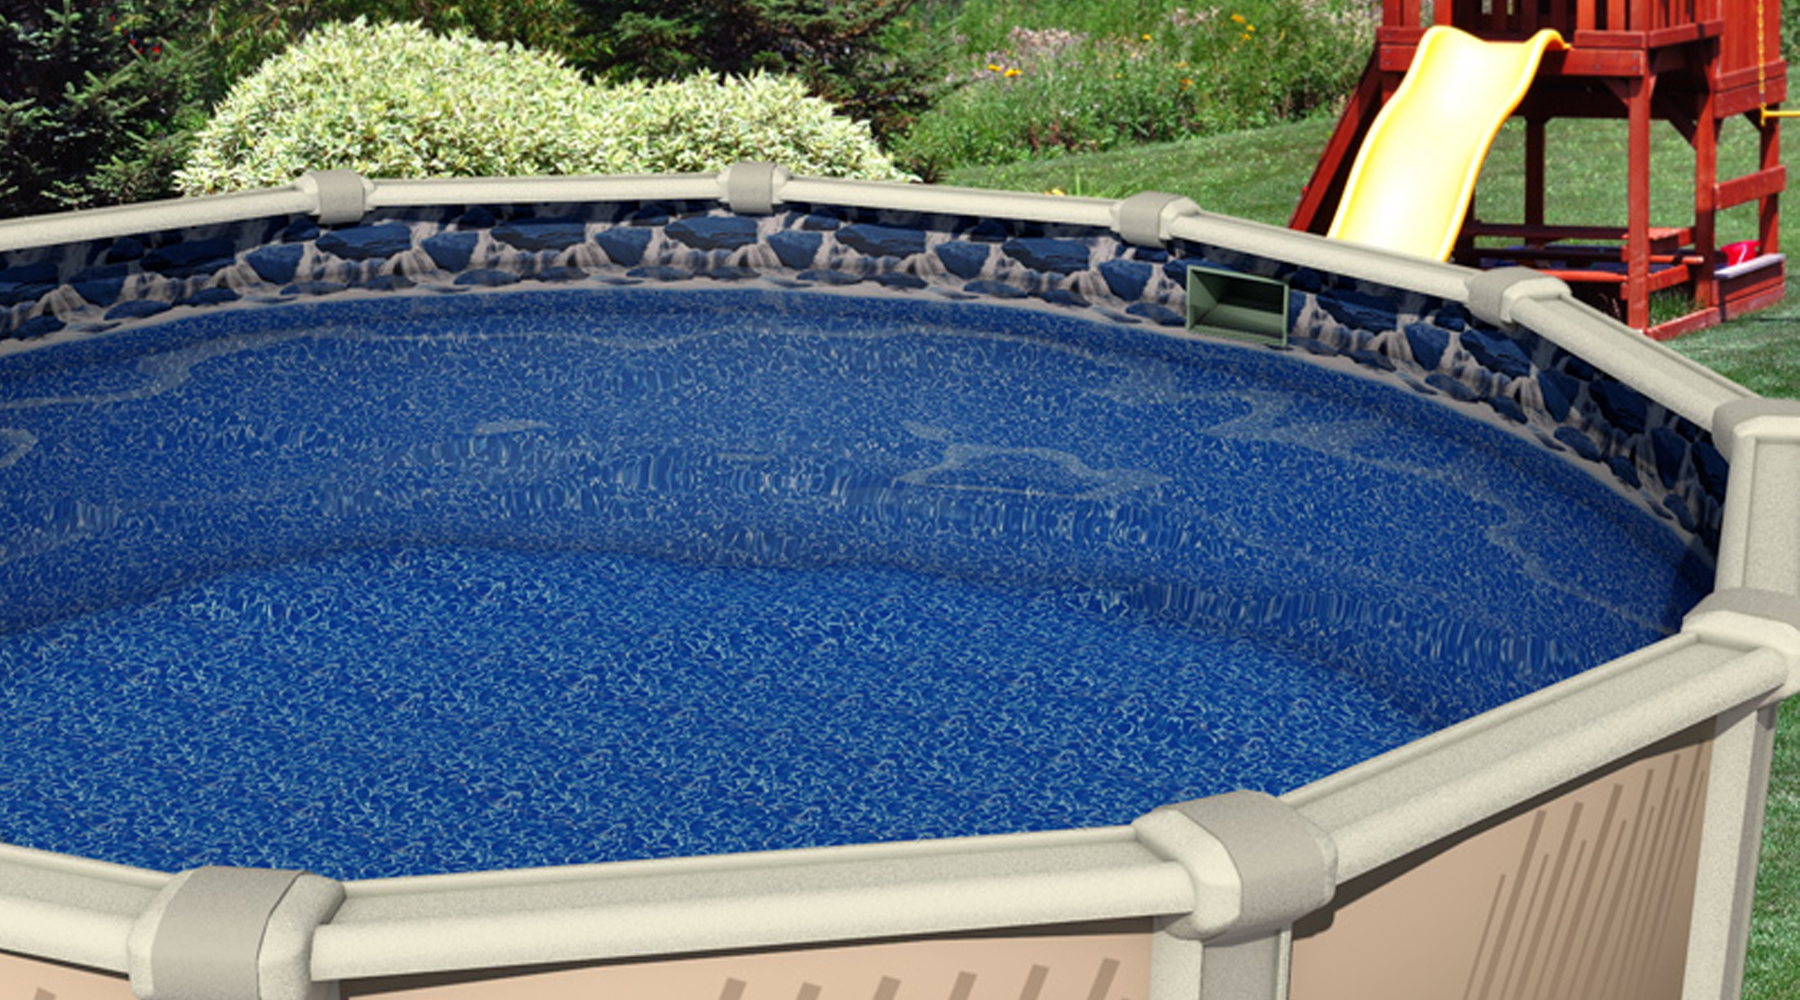 24 39 ft round overlap waterfall above ground swimming pool liner 20 gauge ebay for Round swimming pools above ground